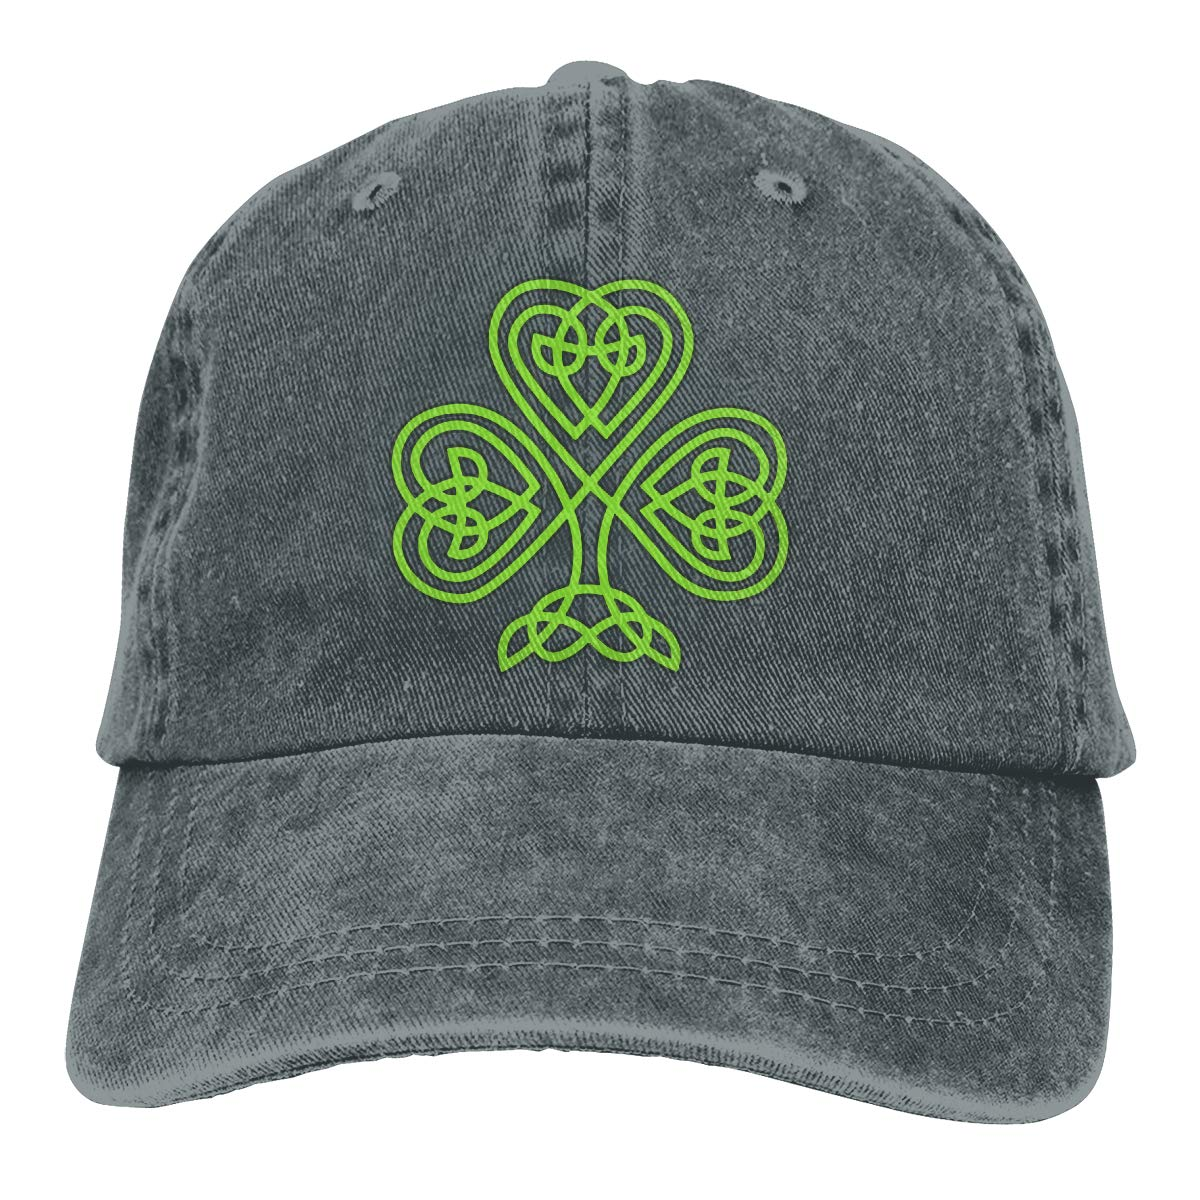 Shamrock Love Unisex Adult Cowboy Hat Sun Hat Adjustable Truck Driver Hat